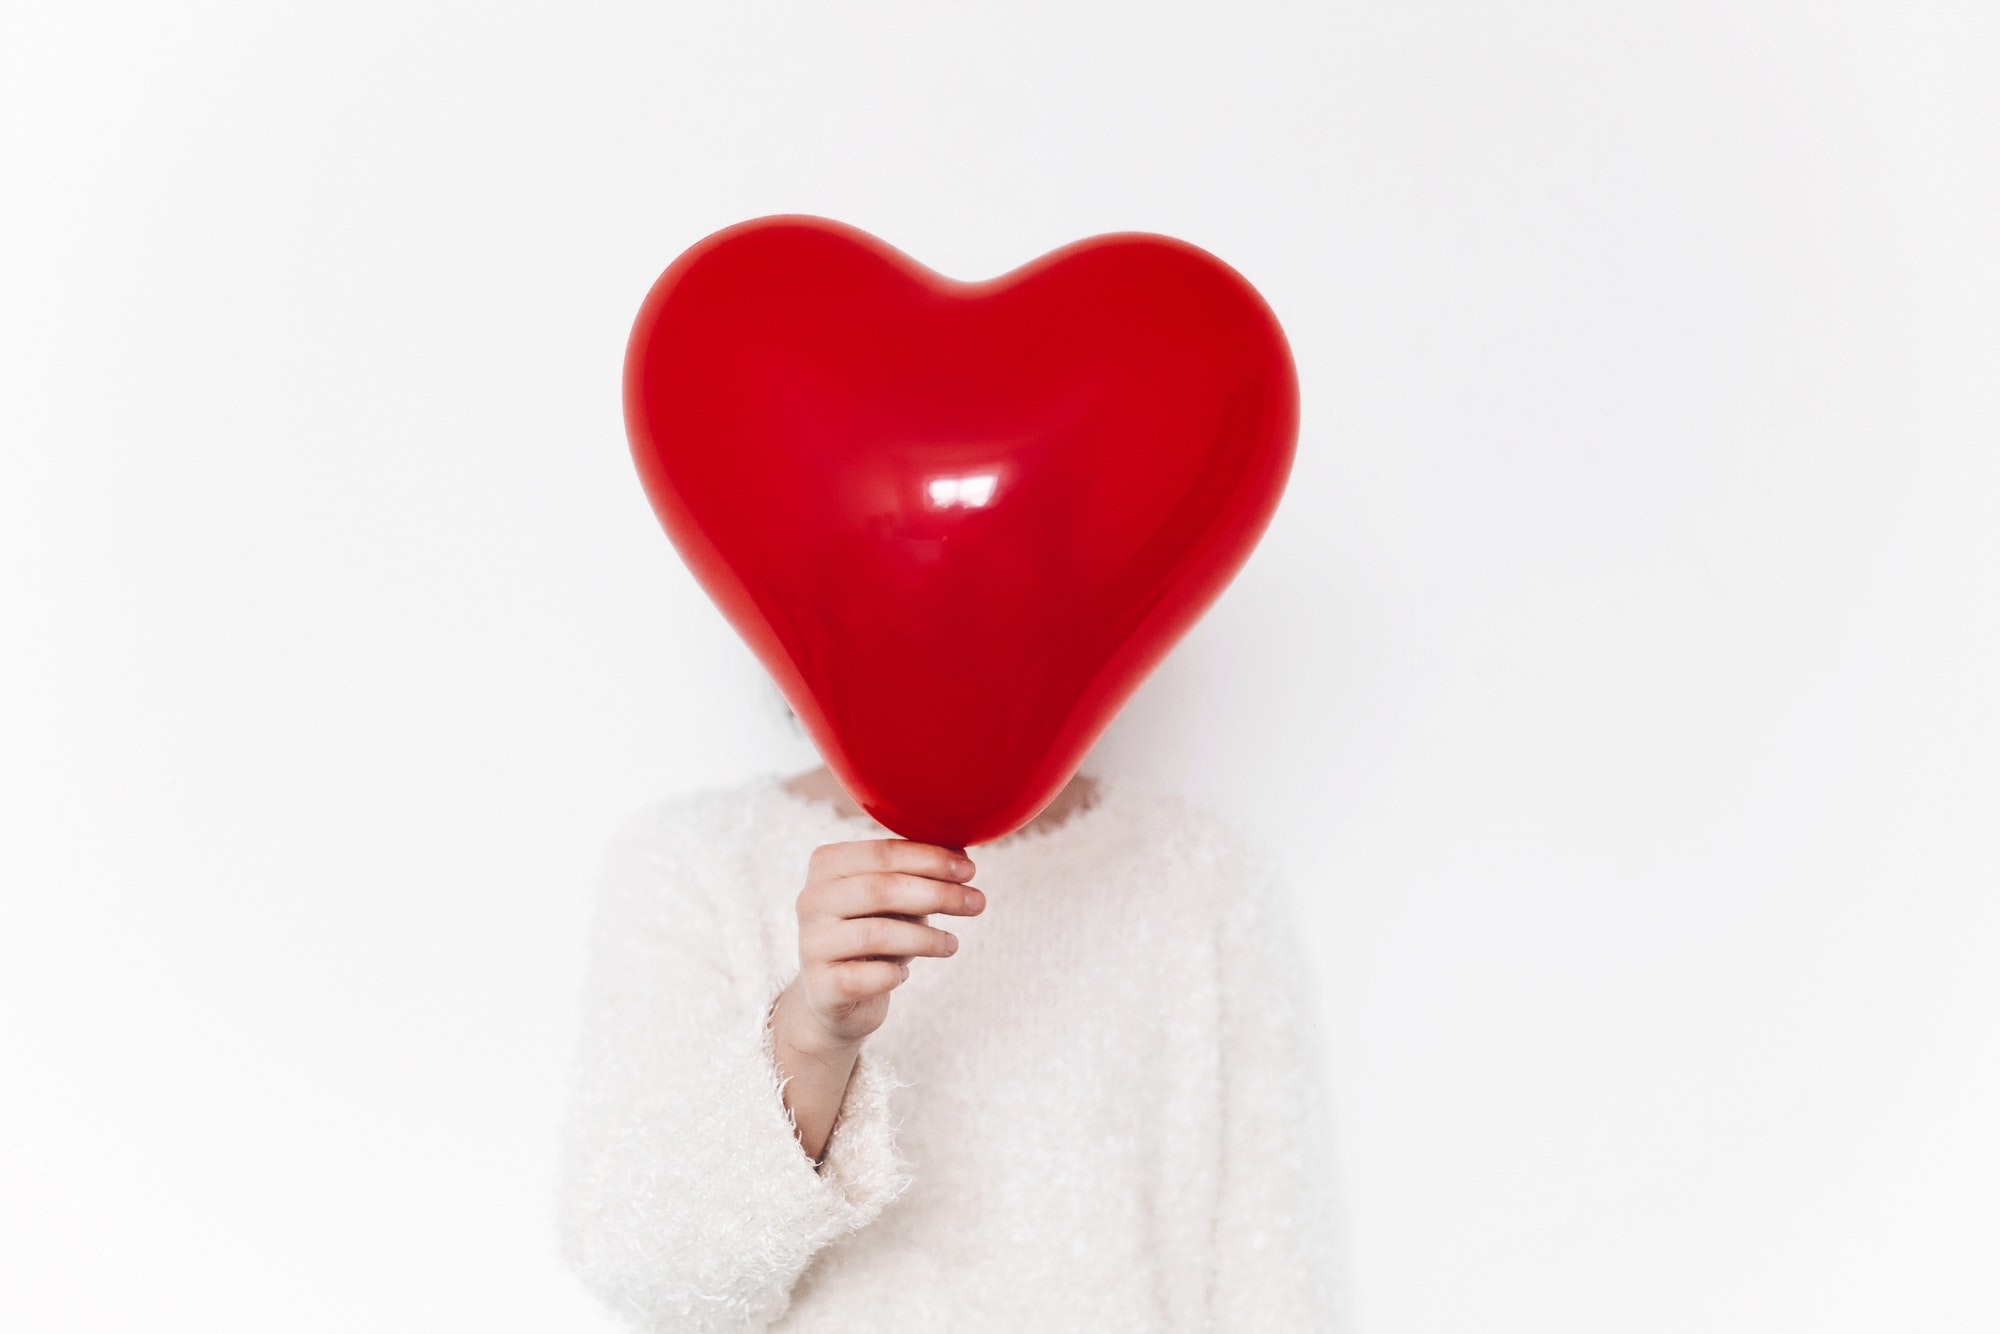 heart health after bariatric surgery